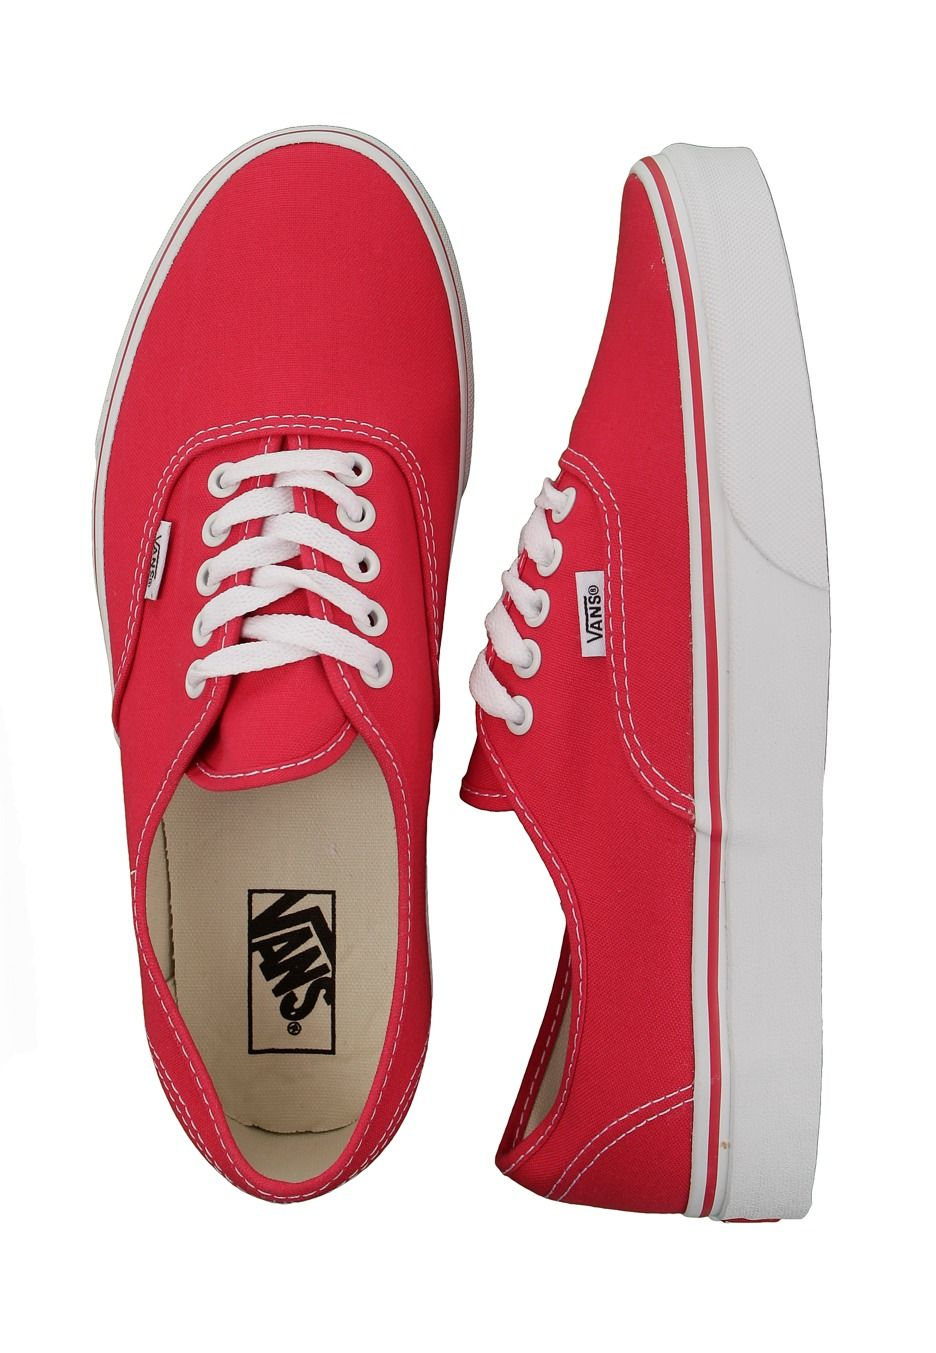 Vans Shoes For Girls Black And Red